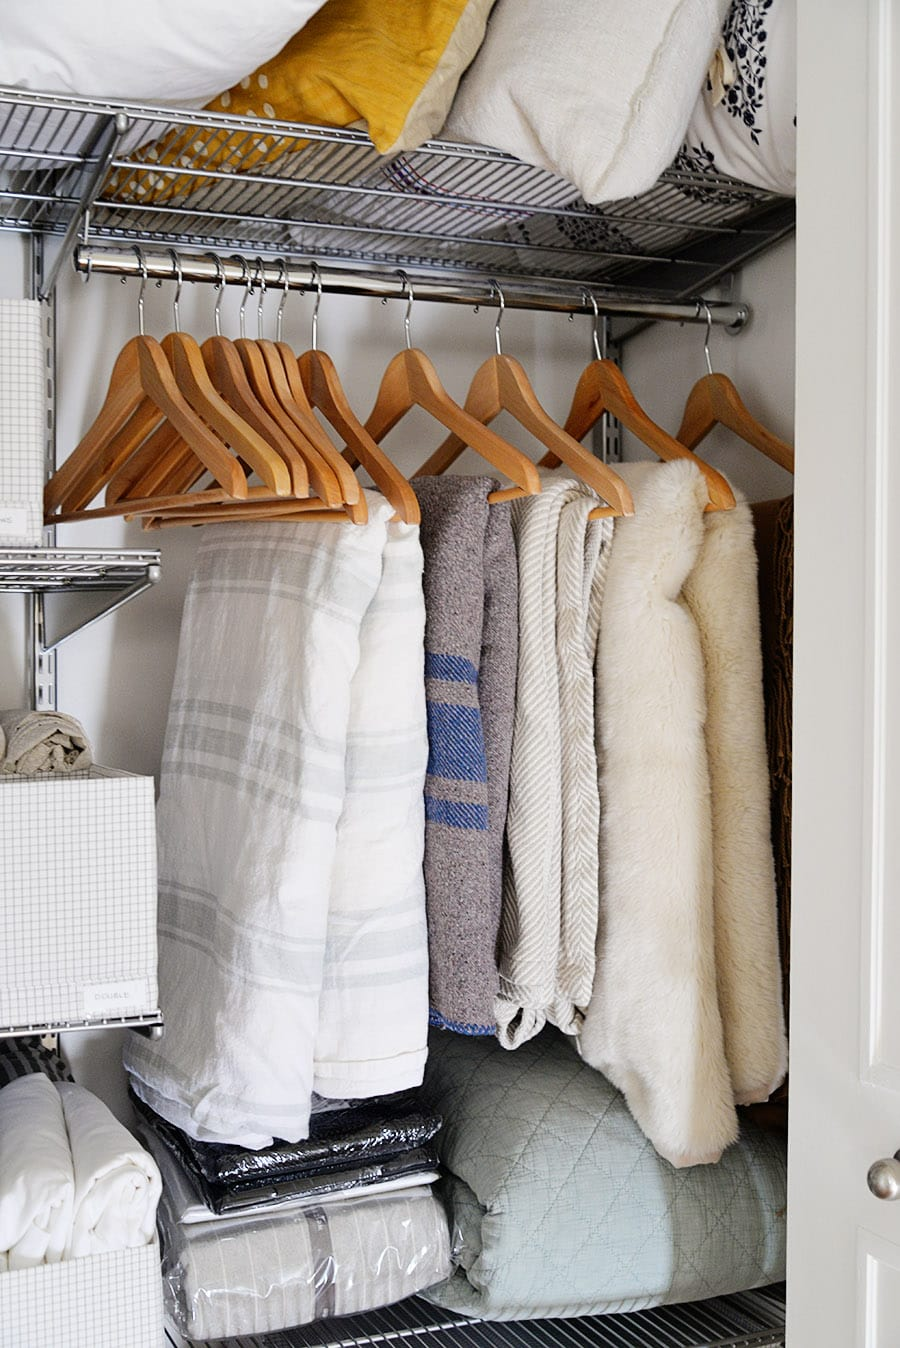 comforters and duvets hung on hangers inside a closet